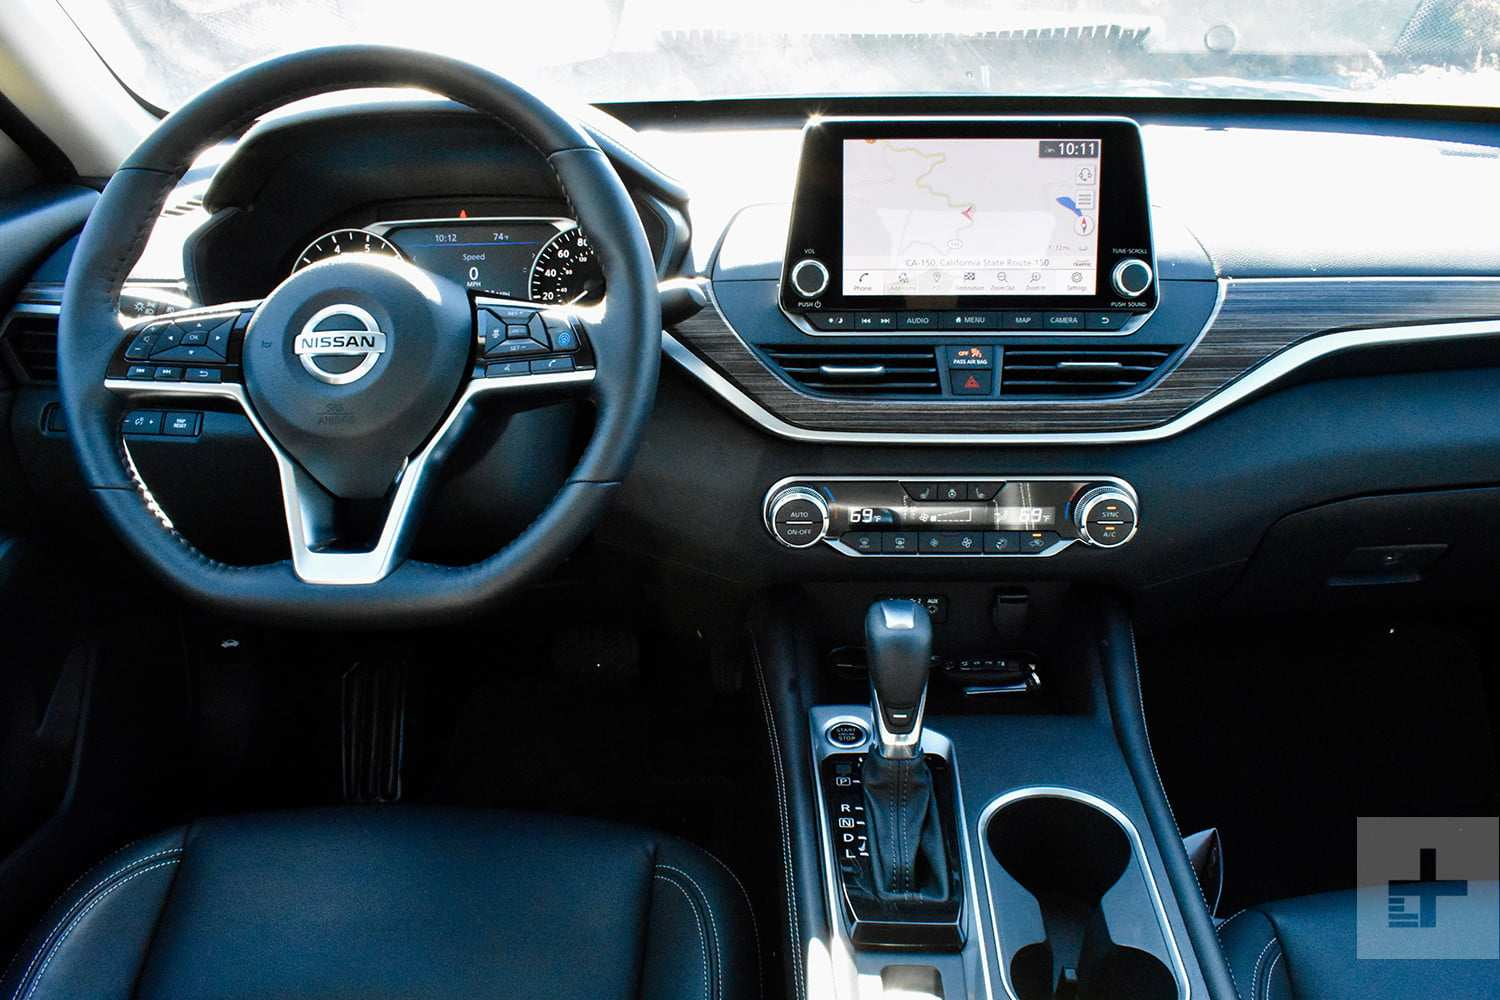 17 All New 2019 Nissan Altima Interior Release Date by 2019 Nissan Altima Interior